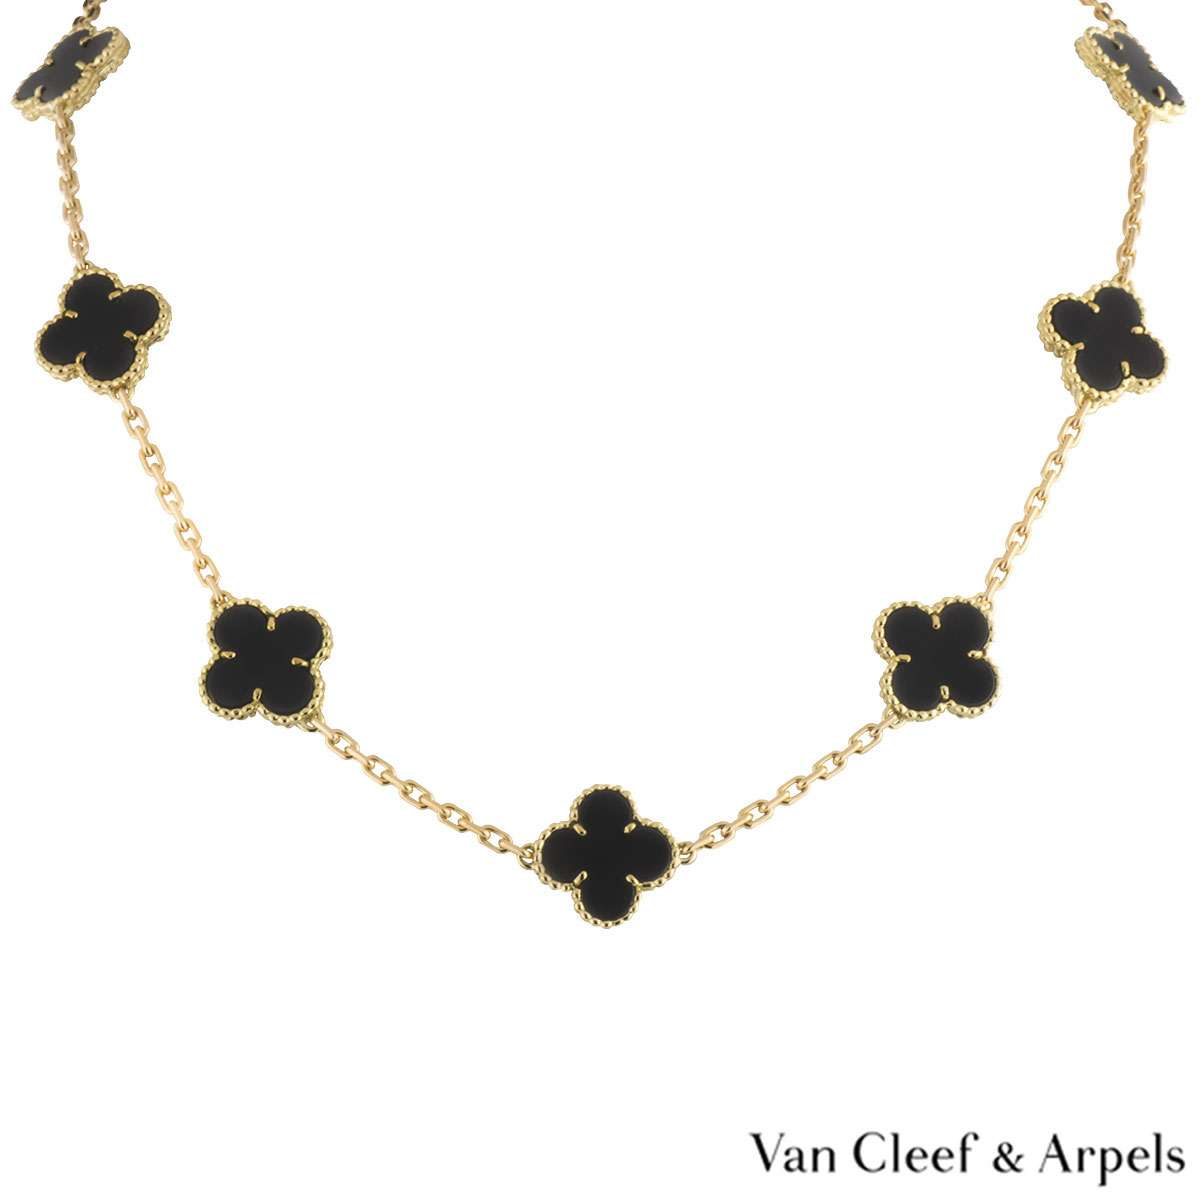 Van Cleef & Arpels Yellow Gold and Onyx Alhambra Necklace VCARA42700